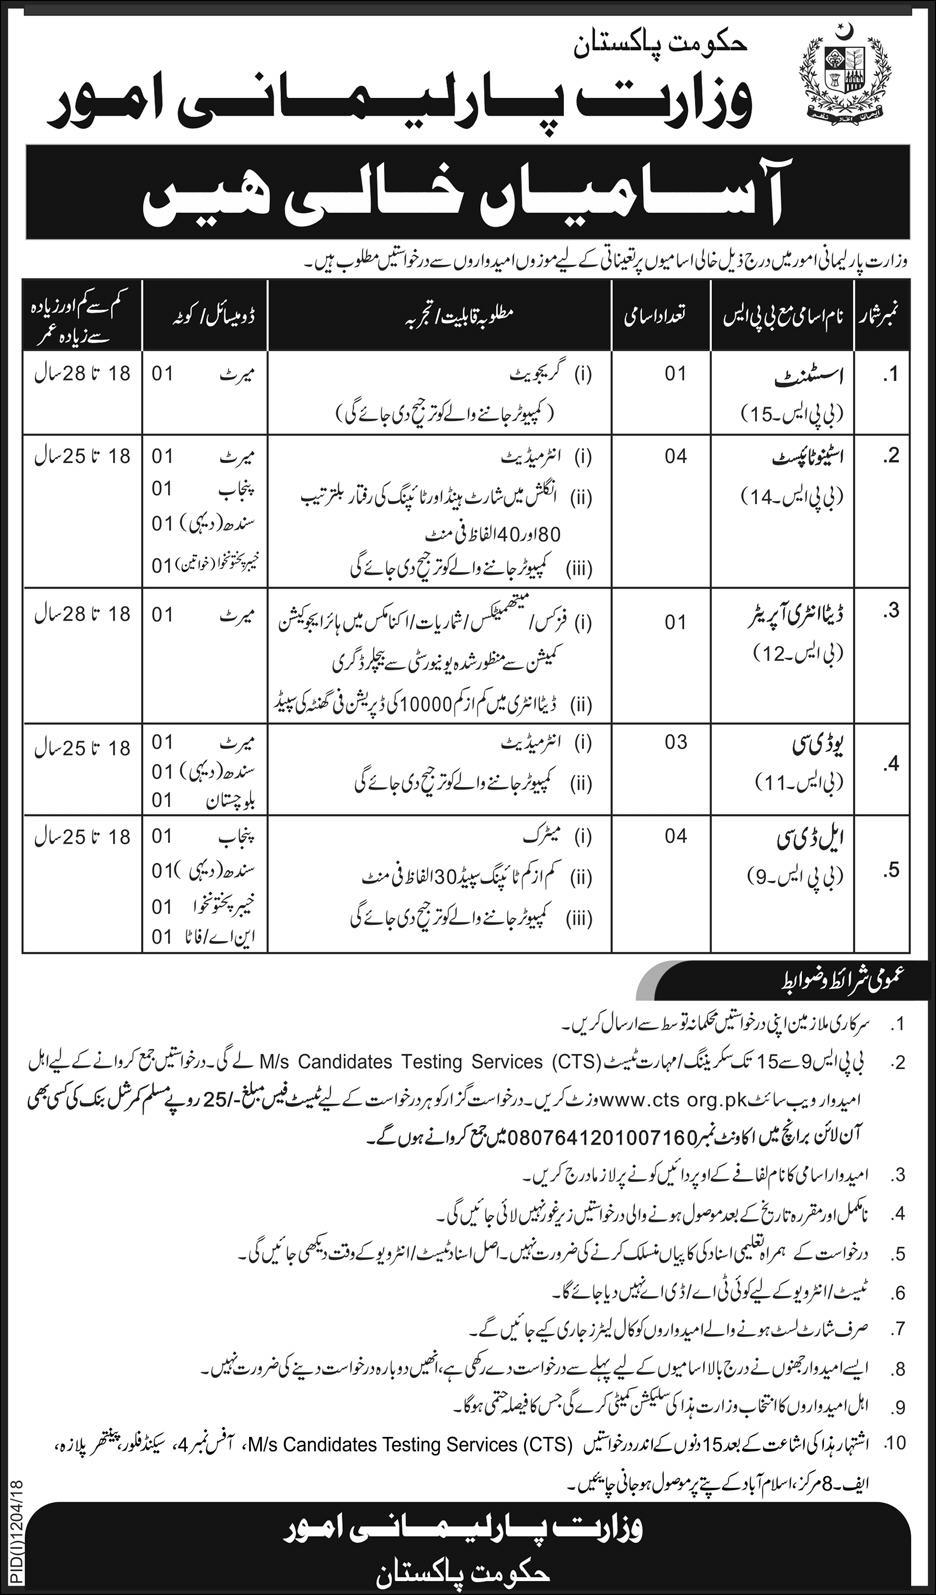 Latest Vacancies Announced in Ministry Of Parliamentary Affairs Govt of Pakistan 16 September 2018